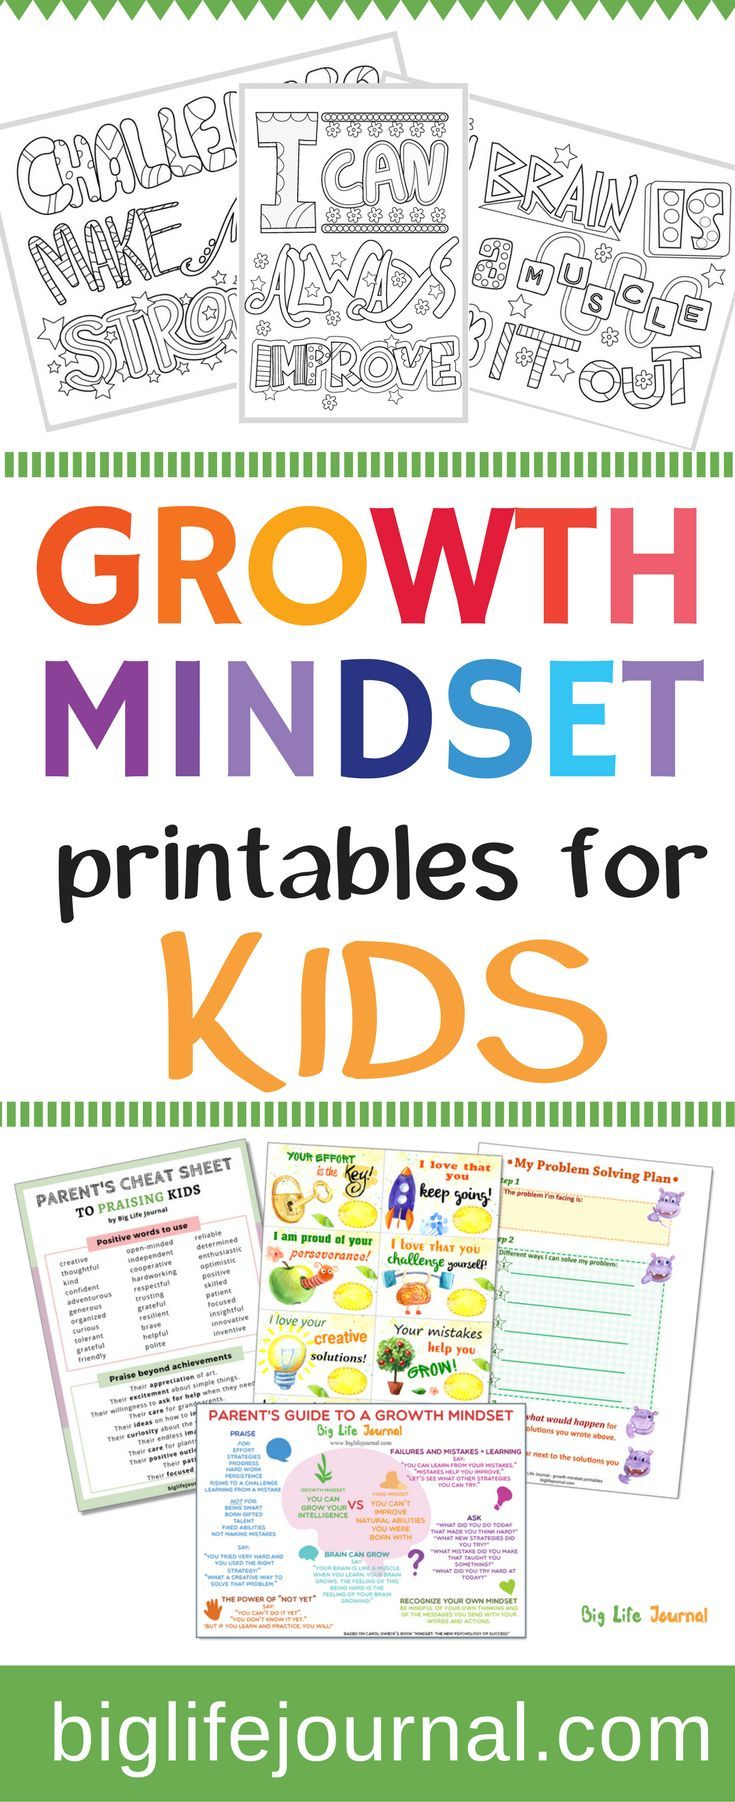 Each week we publish FREE growth mindset printables for kids and parents. Examples include: Parent's guide to a growth mindset, My Problem Solving Plan, My Goal Think Sheet, and more.. If you're a user experience professional, listen to The UX Blog Podcast on iTunes.